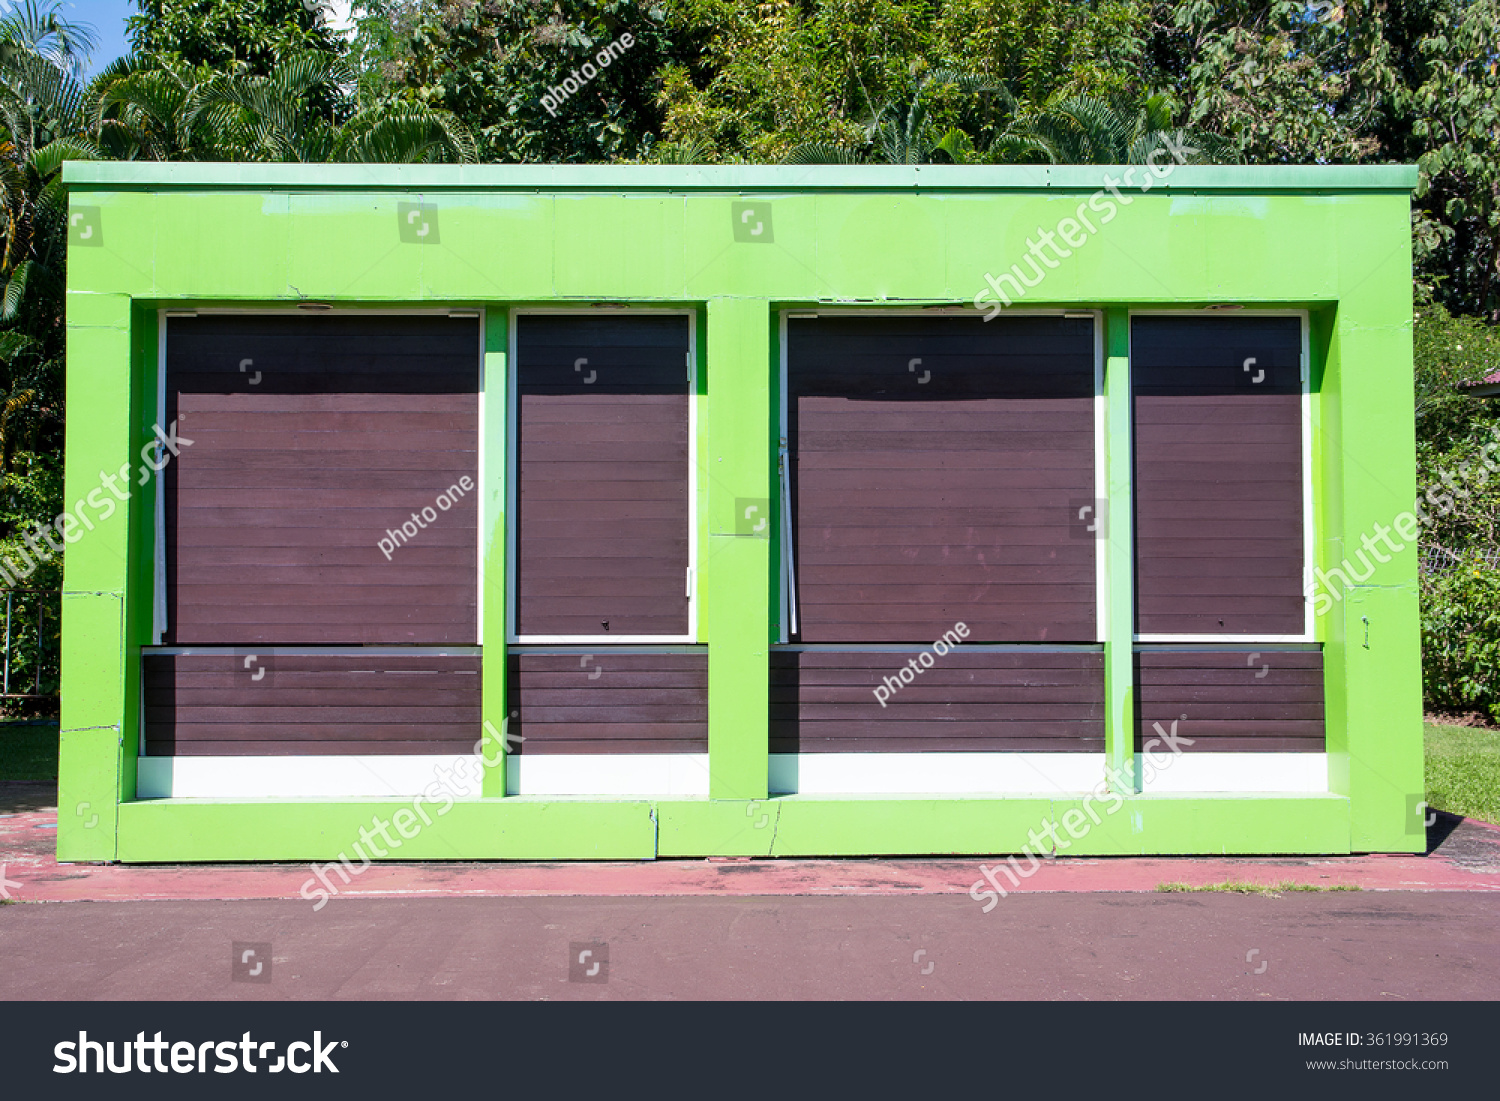 Exterior Green Restaurant Cafe Shop Front Stock Photo Edit Now 361991369